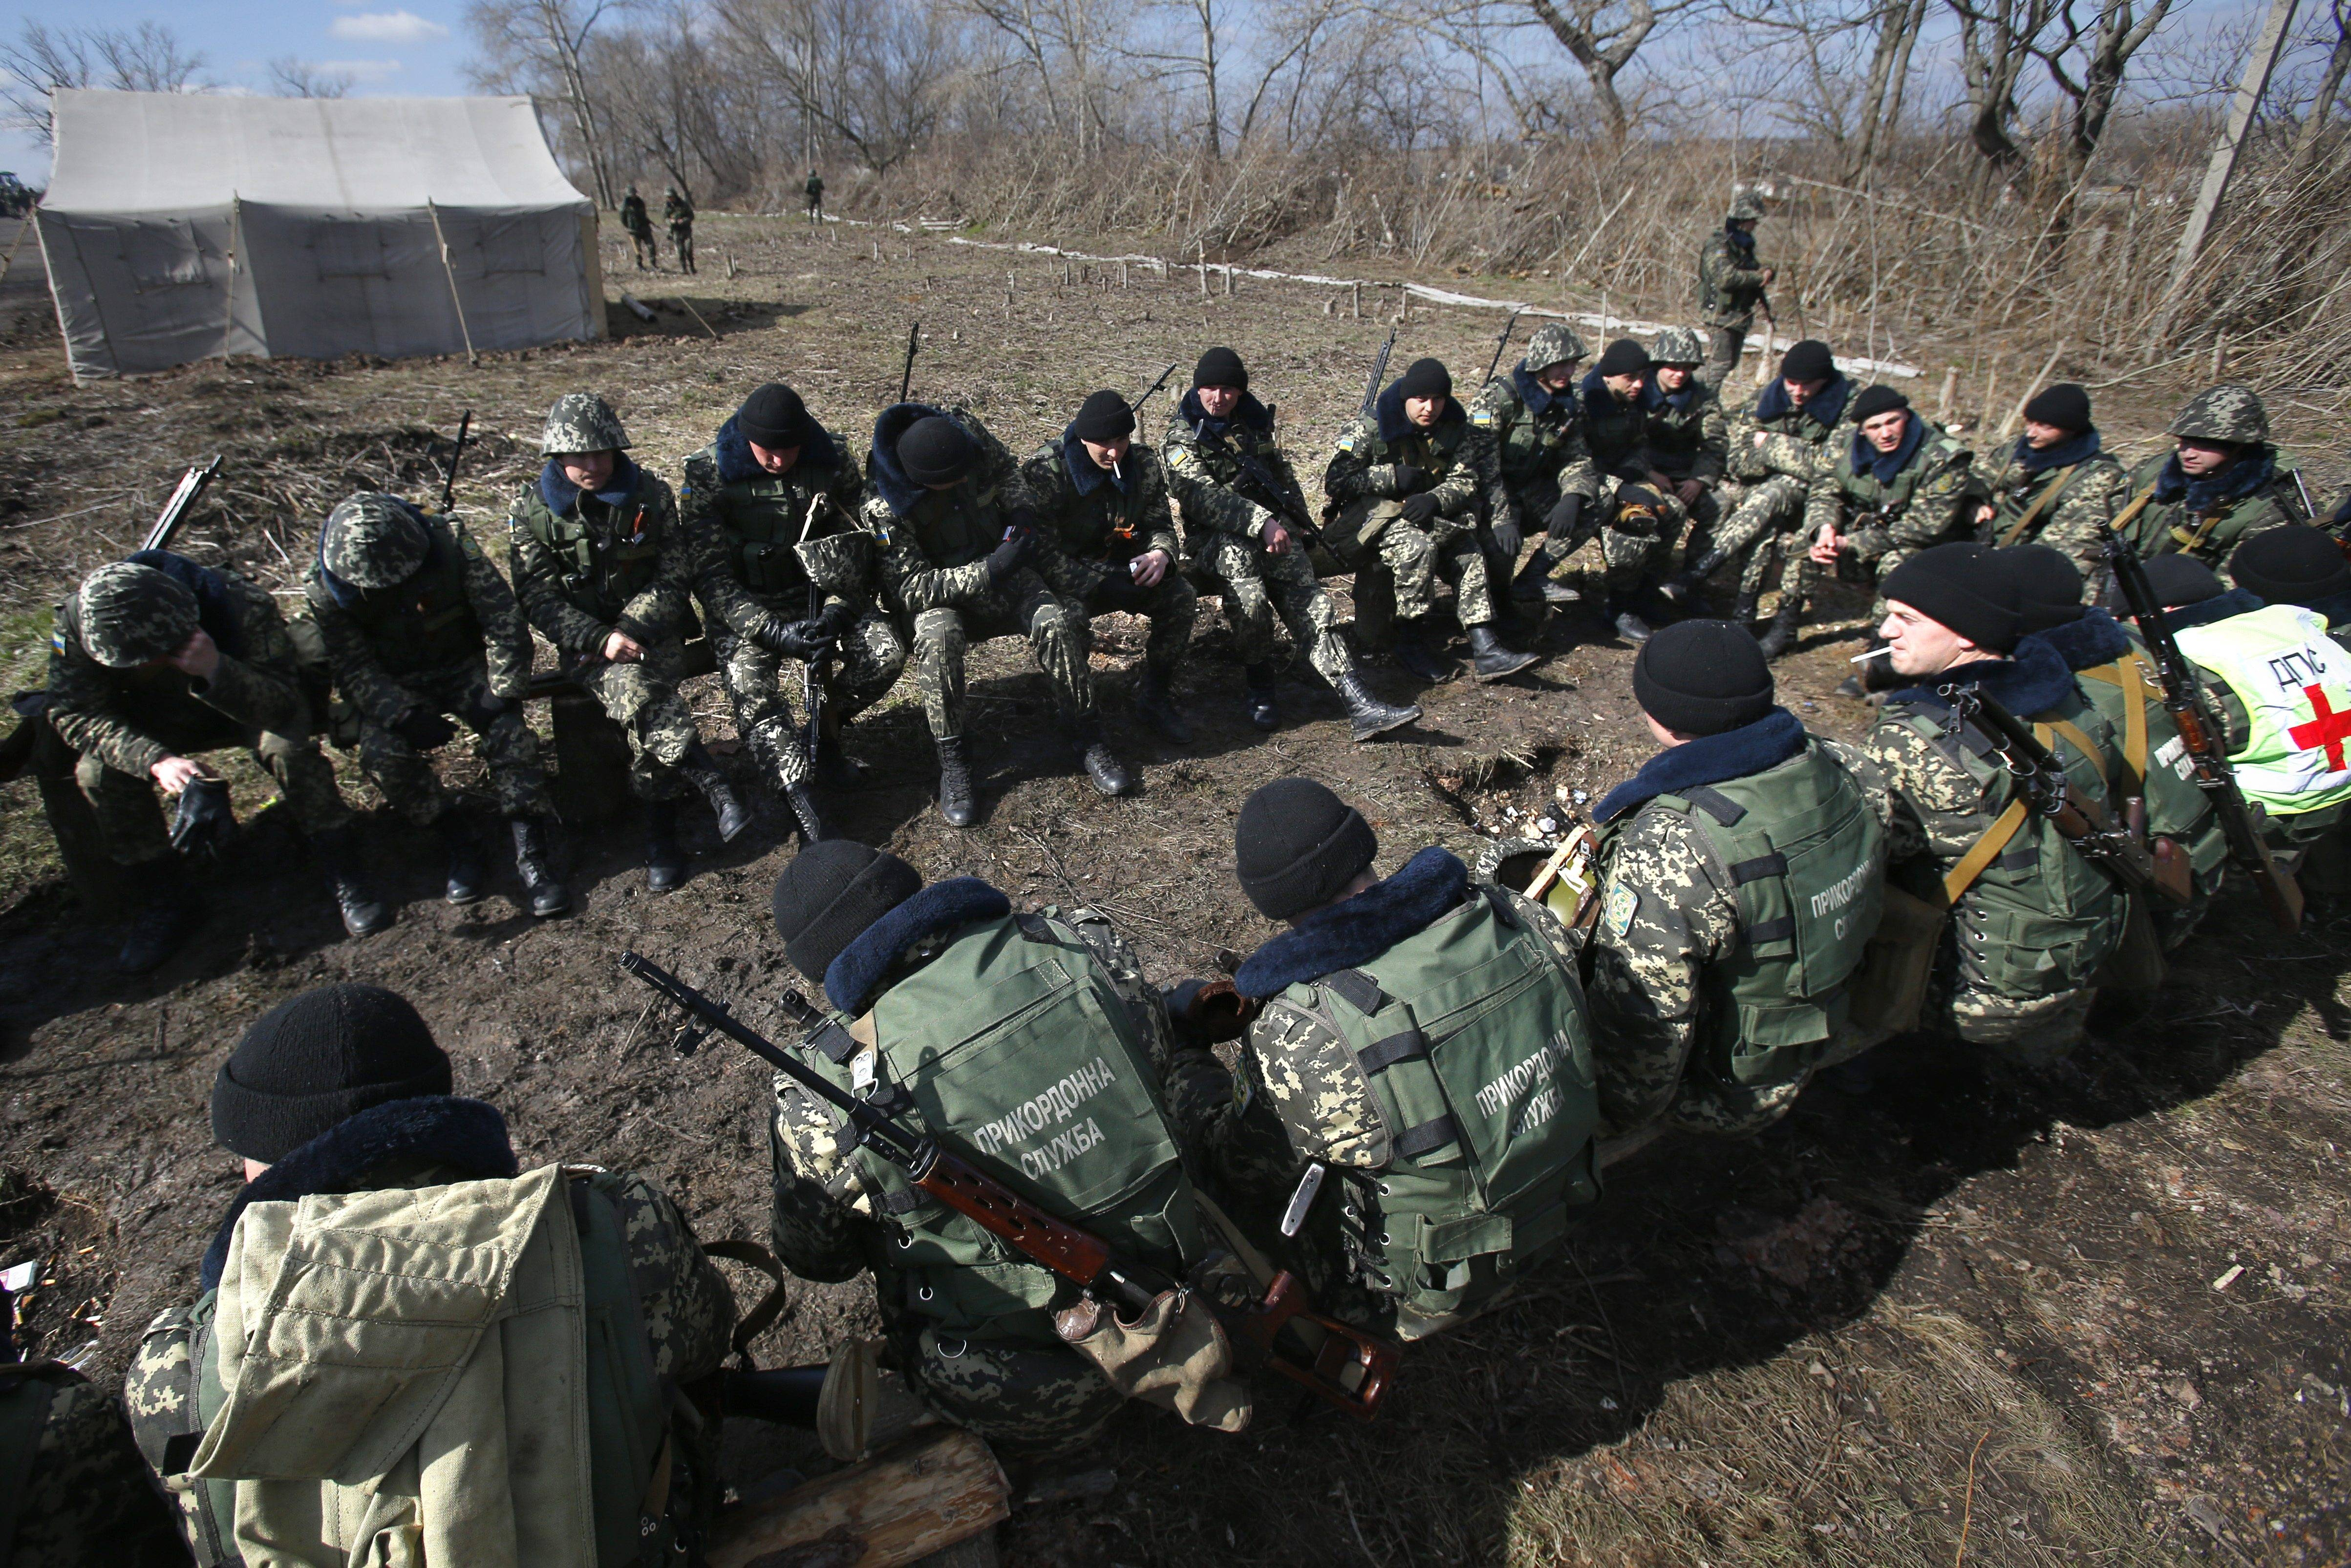 Ukrainian border guards take a break Friday during a training session at a military camp in the village of Alekseyevka on the Ukrainian-Russian border. Russian President Vladimir Putin signed bills on Friday making Crimea part of Russia, completing the annexation from Ukraine.